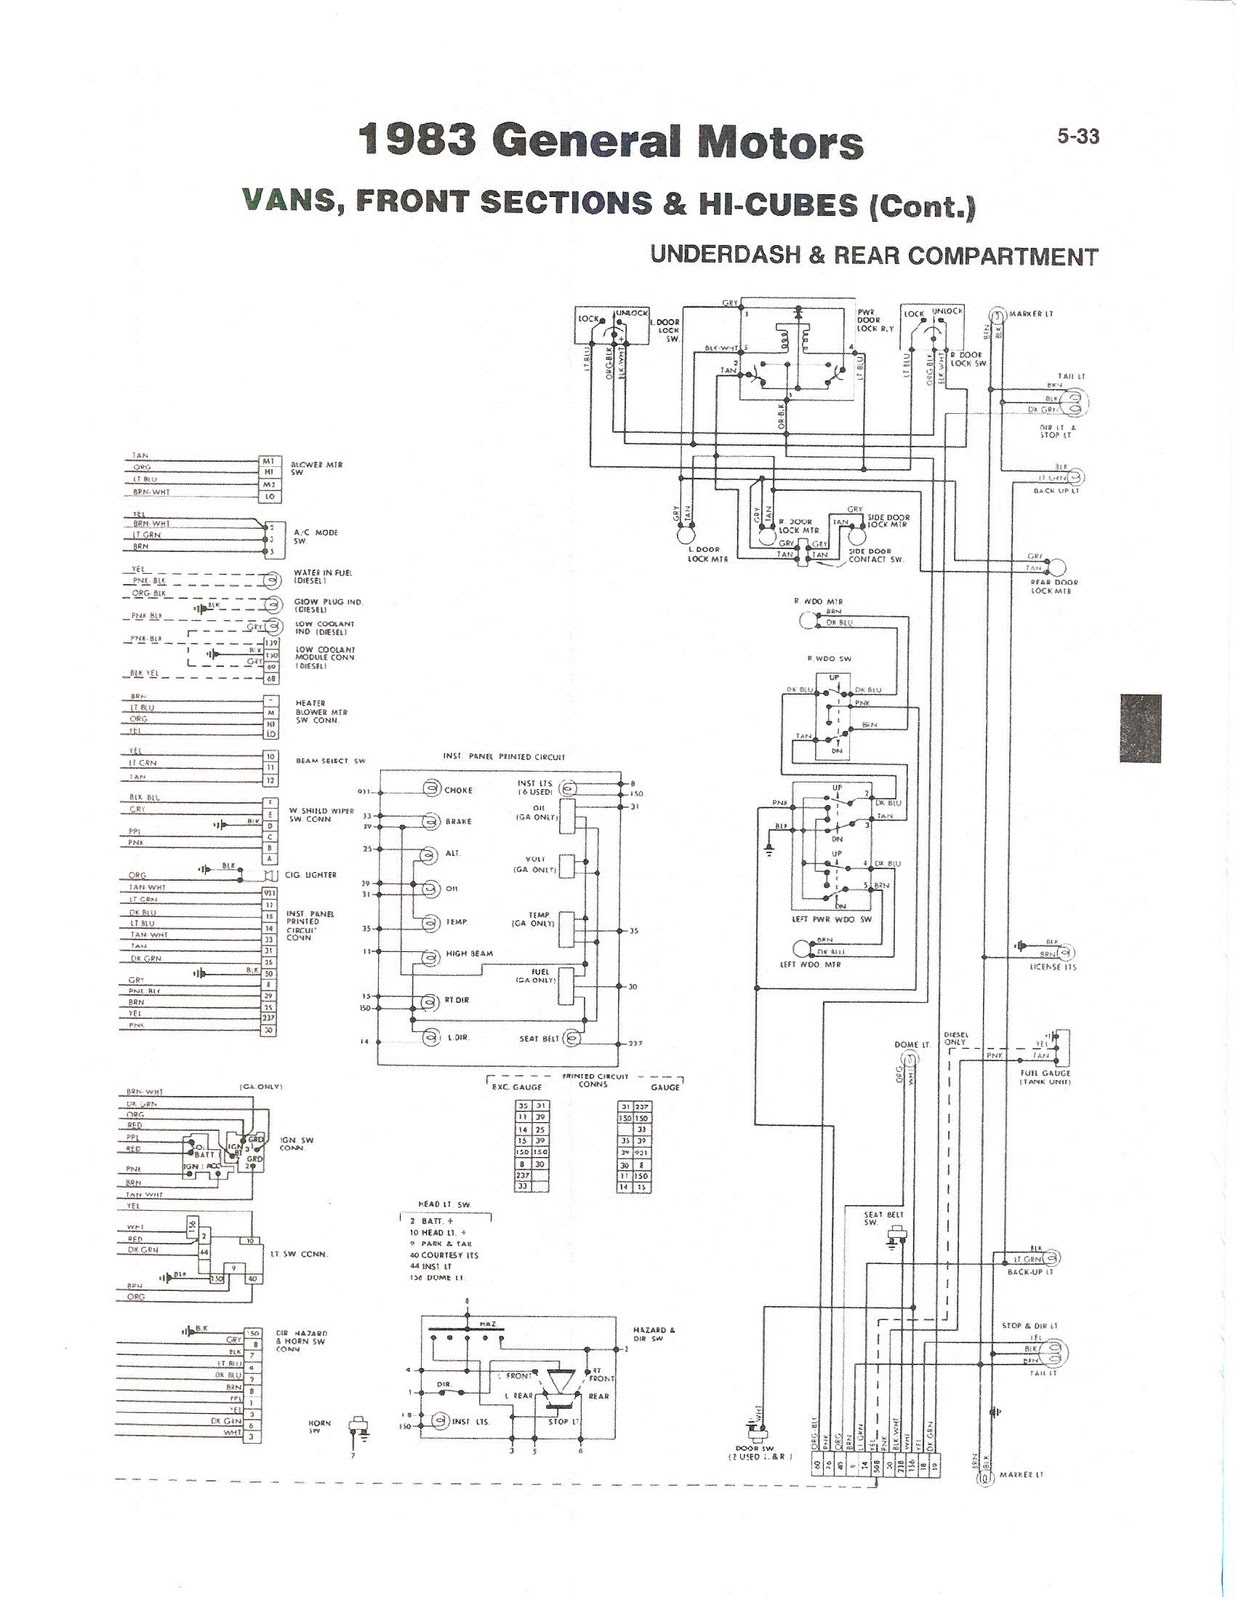 83+GM+Van+front+section+%26+Hi Cubes++underdash+%26+rear+compartment 1983 fleetwood pace arrow owners manuals wireing diagram 83 gm gm wiring diagrams online at n-0.co